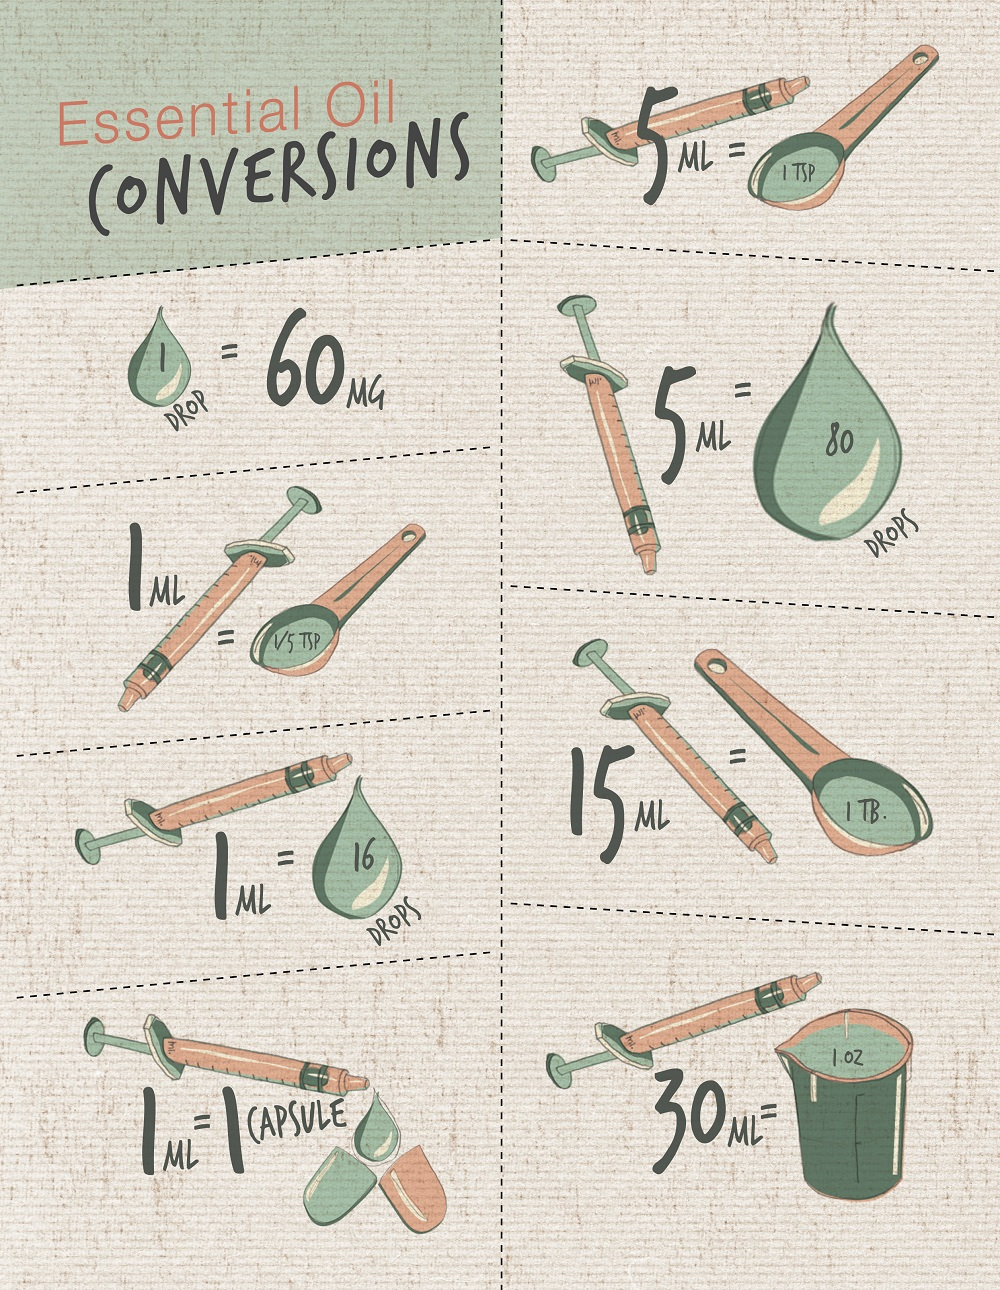 Essential Oil Basics: Conversions Infographic